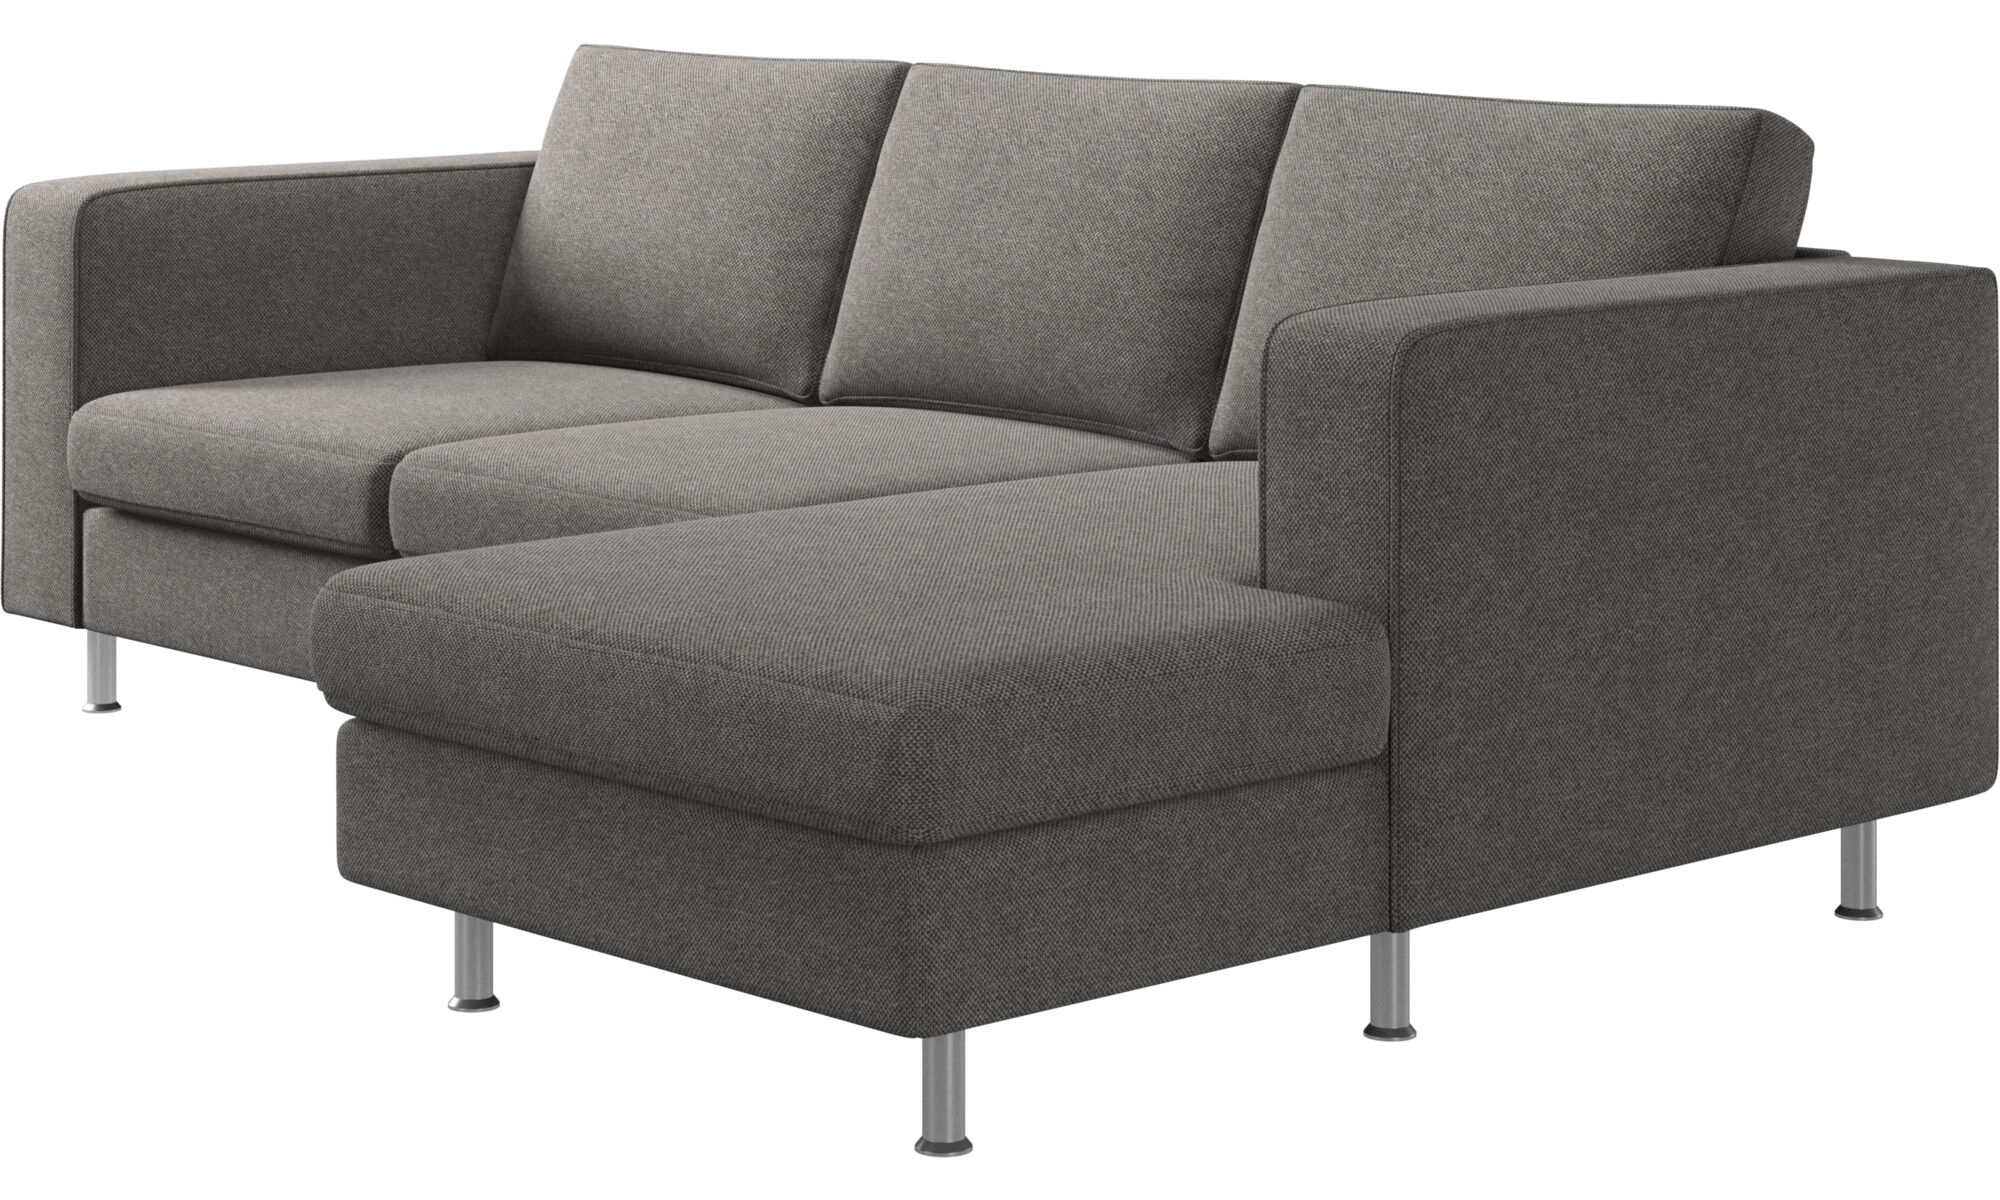 ... Chaise Lounge Sofas   Indivi 2 Sofa With Resting Unit   Gray   Fabric  ...